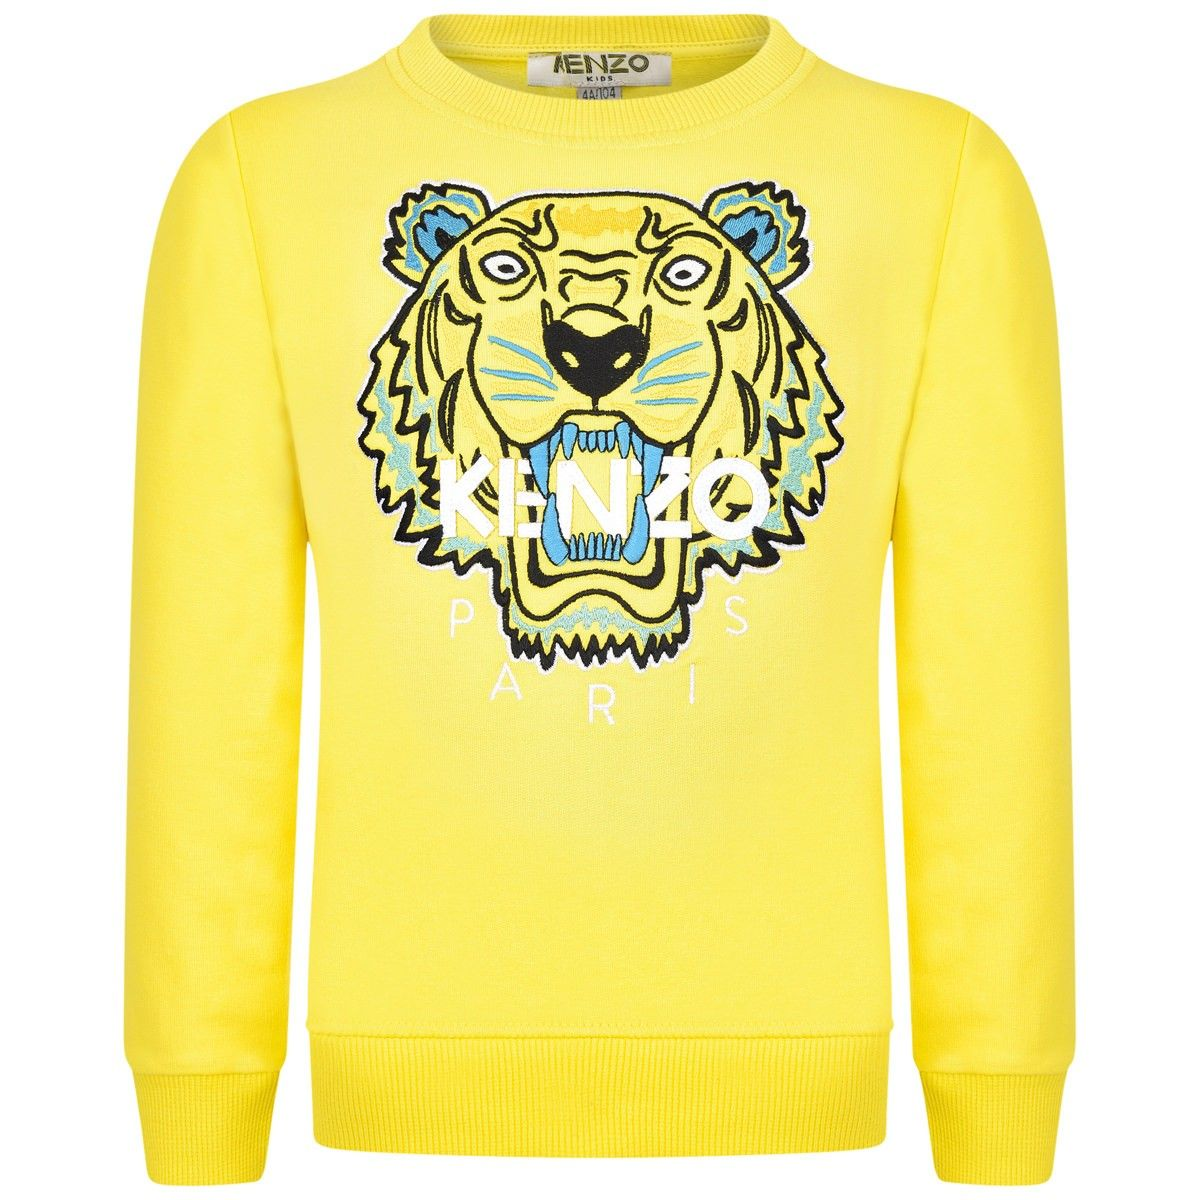 Kenzo Boys Yellow Embroidered Tiger Sweater | Kenzo Paris ...